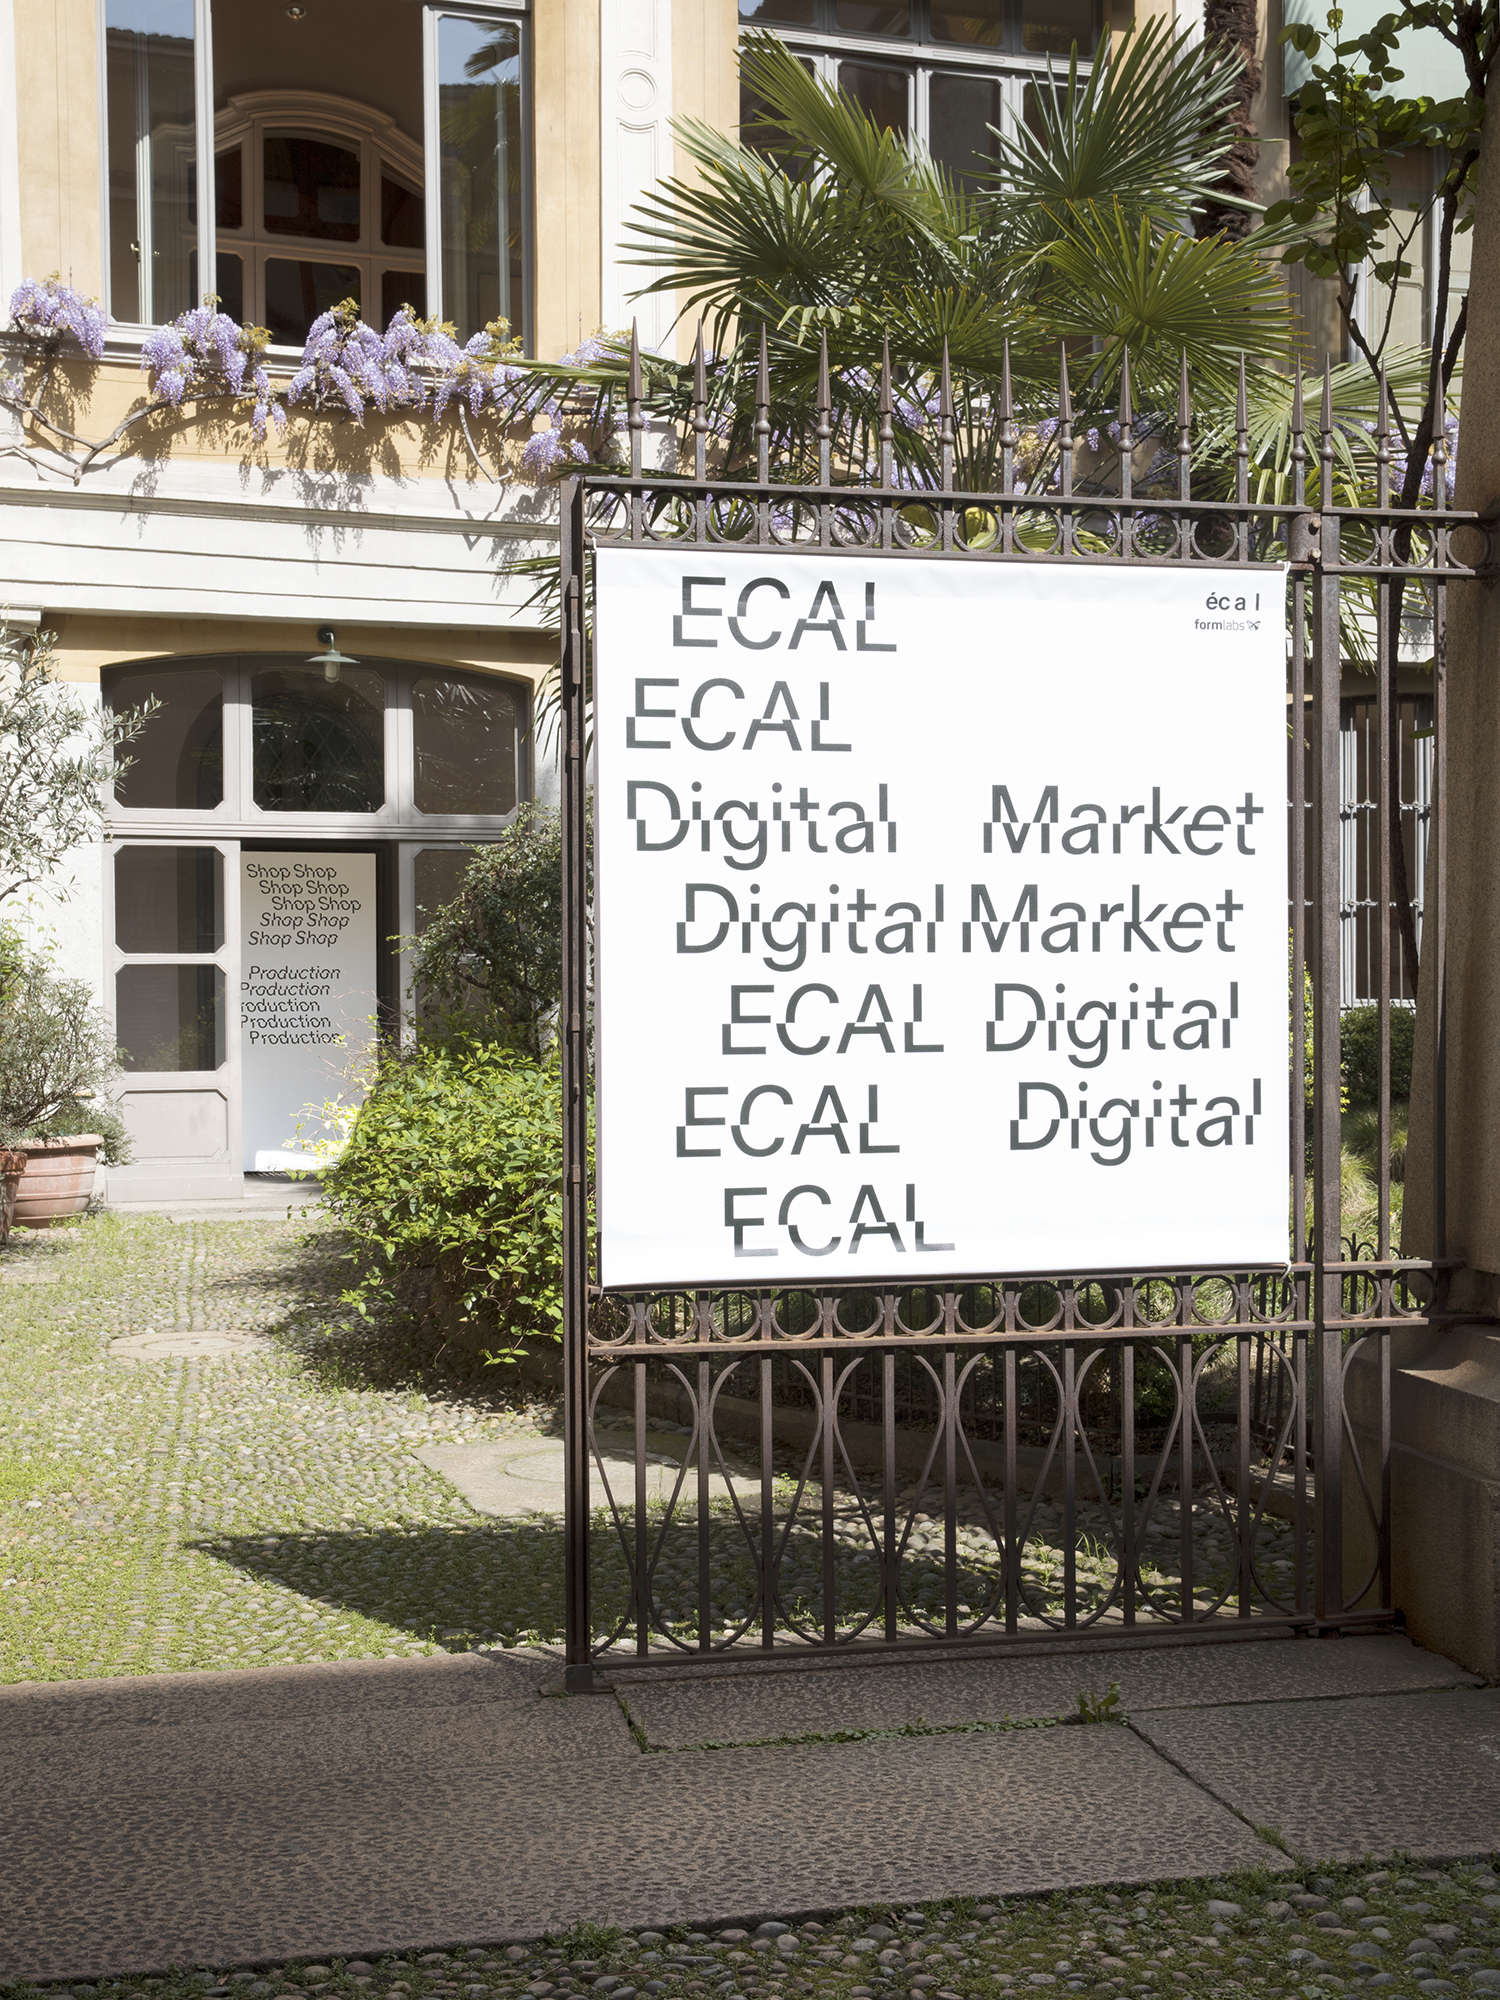 ecal_digital_market_1